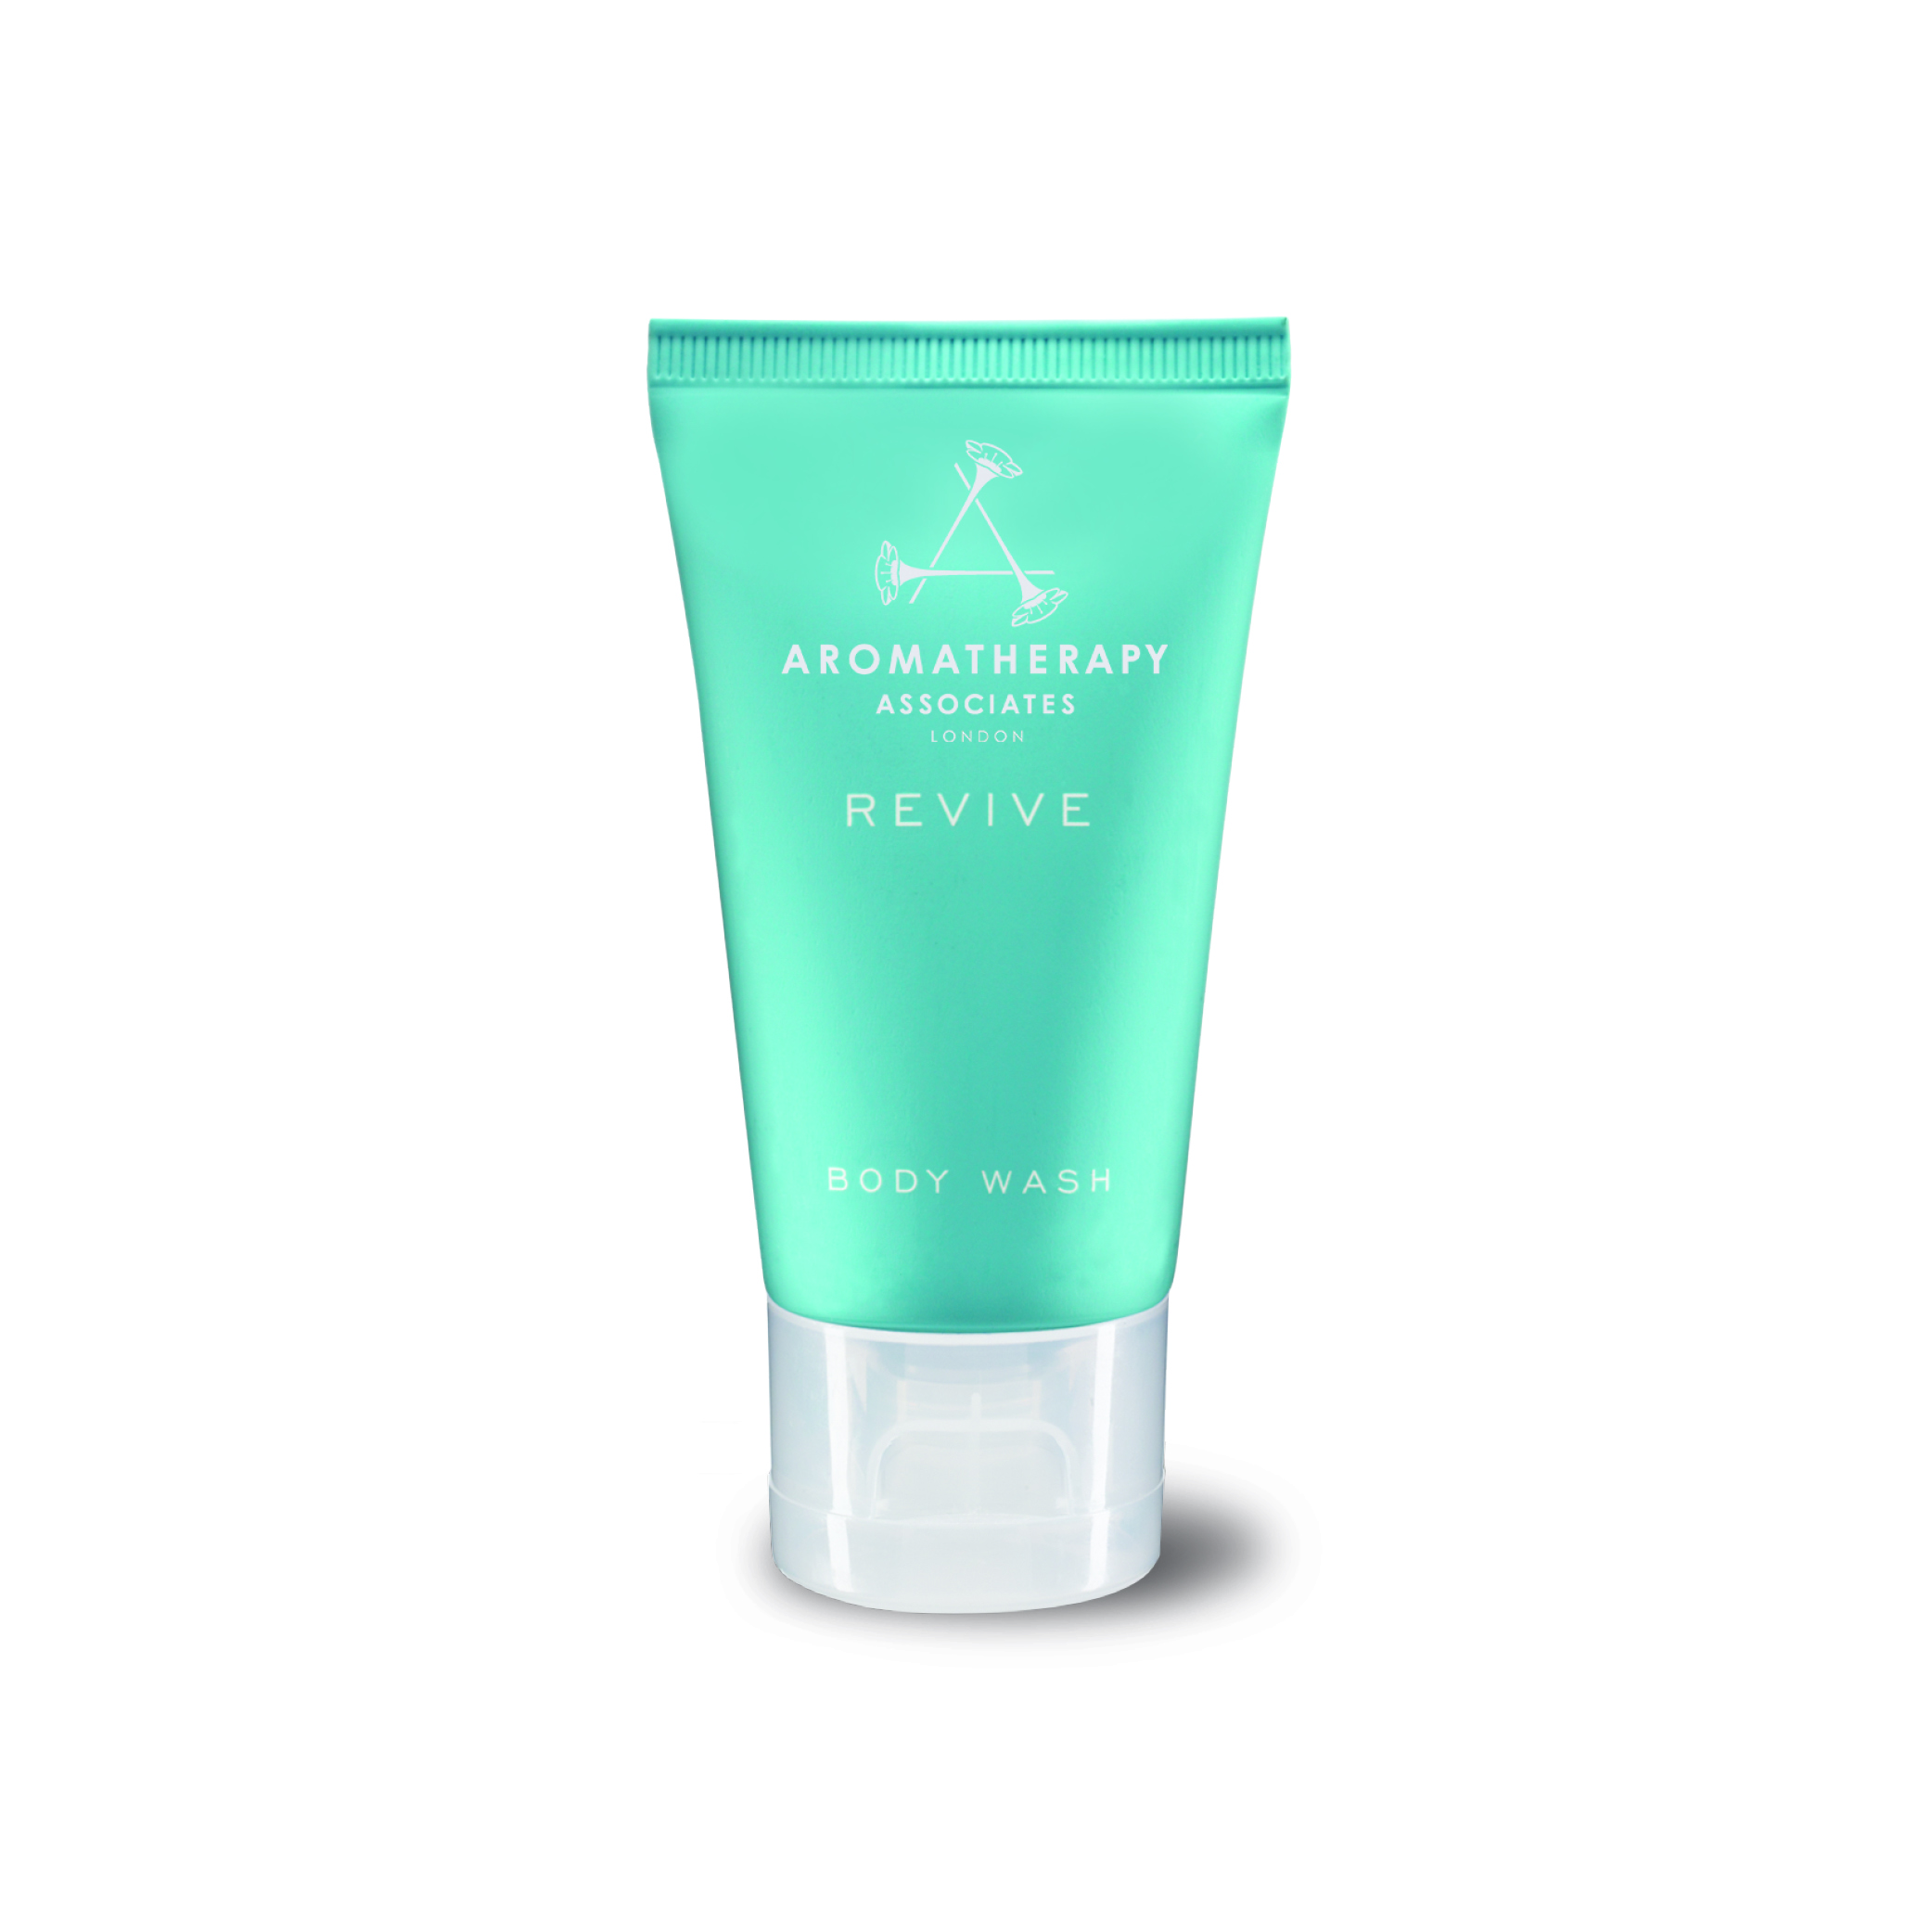 Aromatherapy Associates Revive Body Wash 40ml